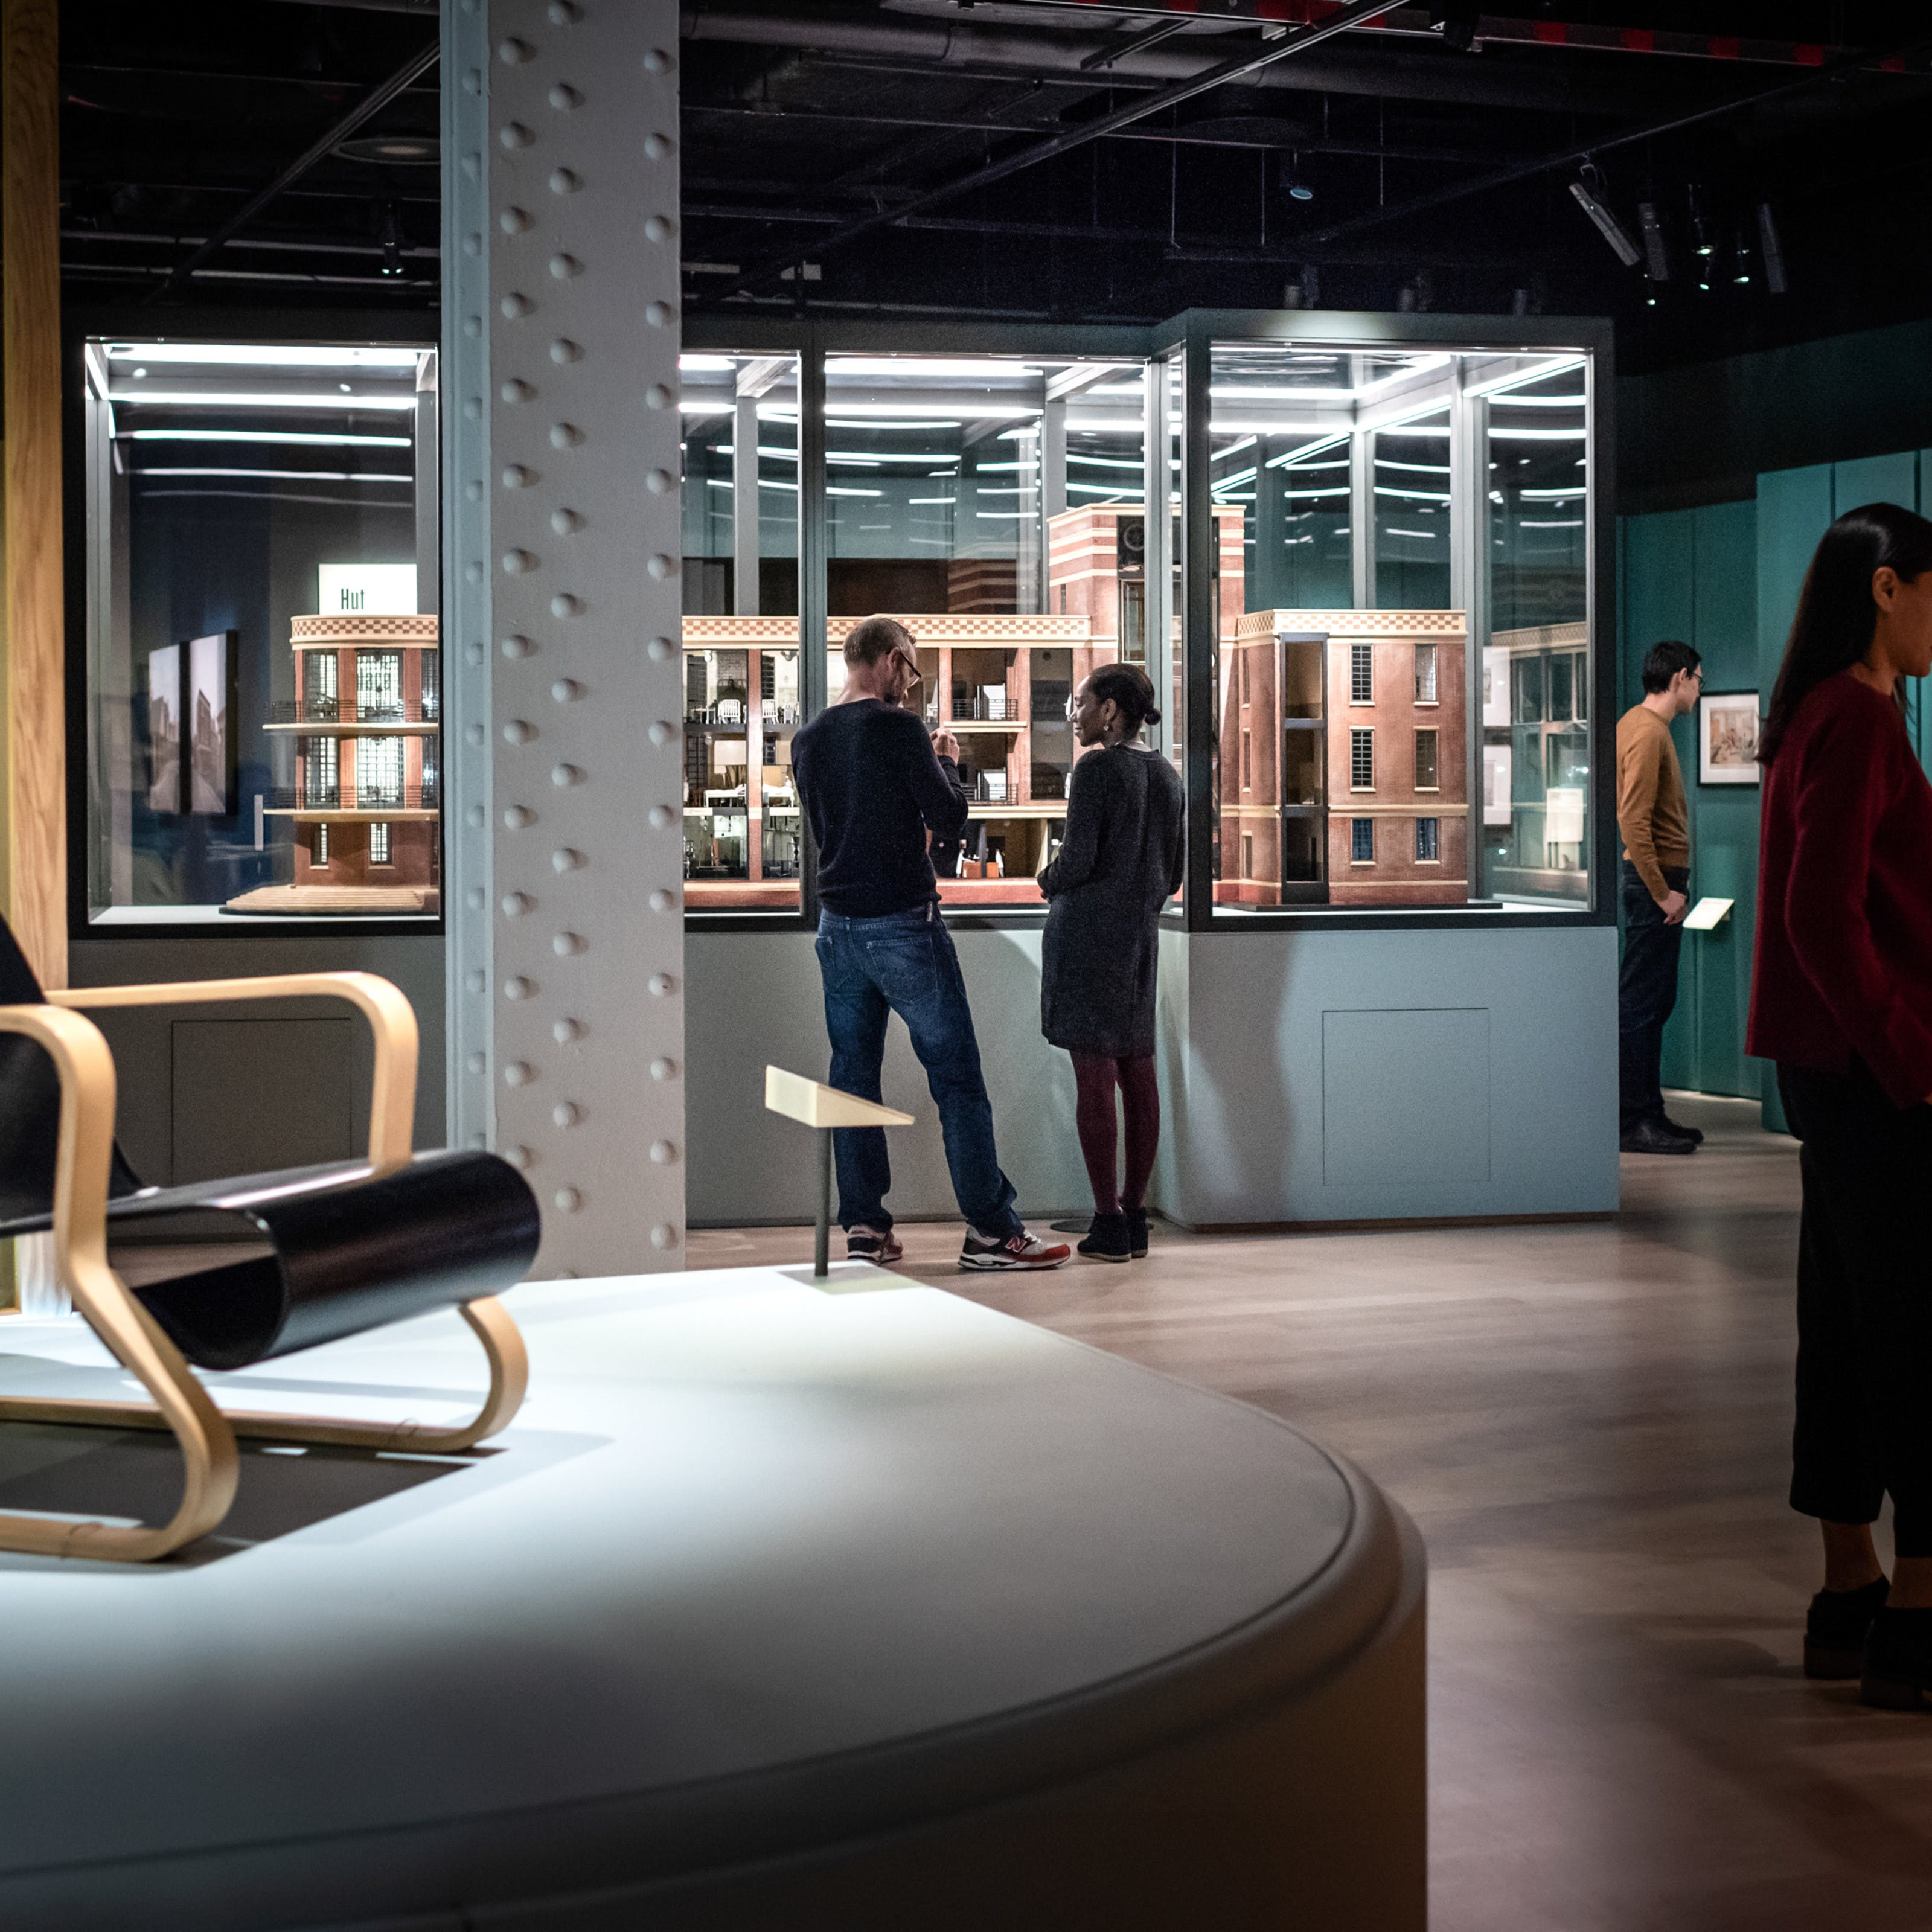 Photograph of visitors exploring the exhibition, Living with Buildings at Wellcome Collection. Photograph shows an architectural model in a display case, an armchair and framed works hanging on the wall.